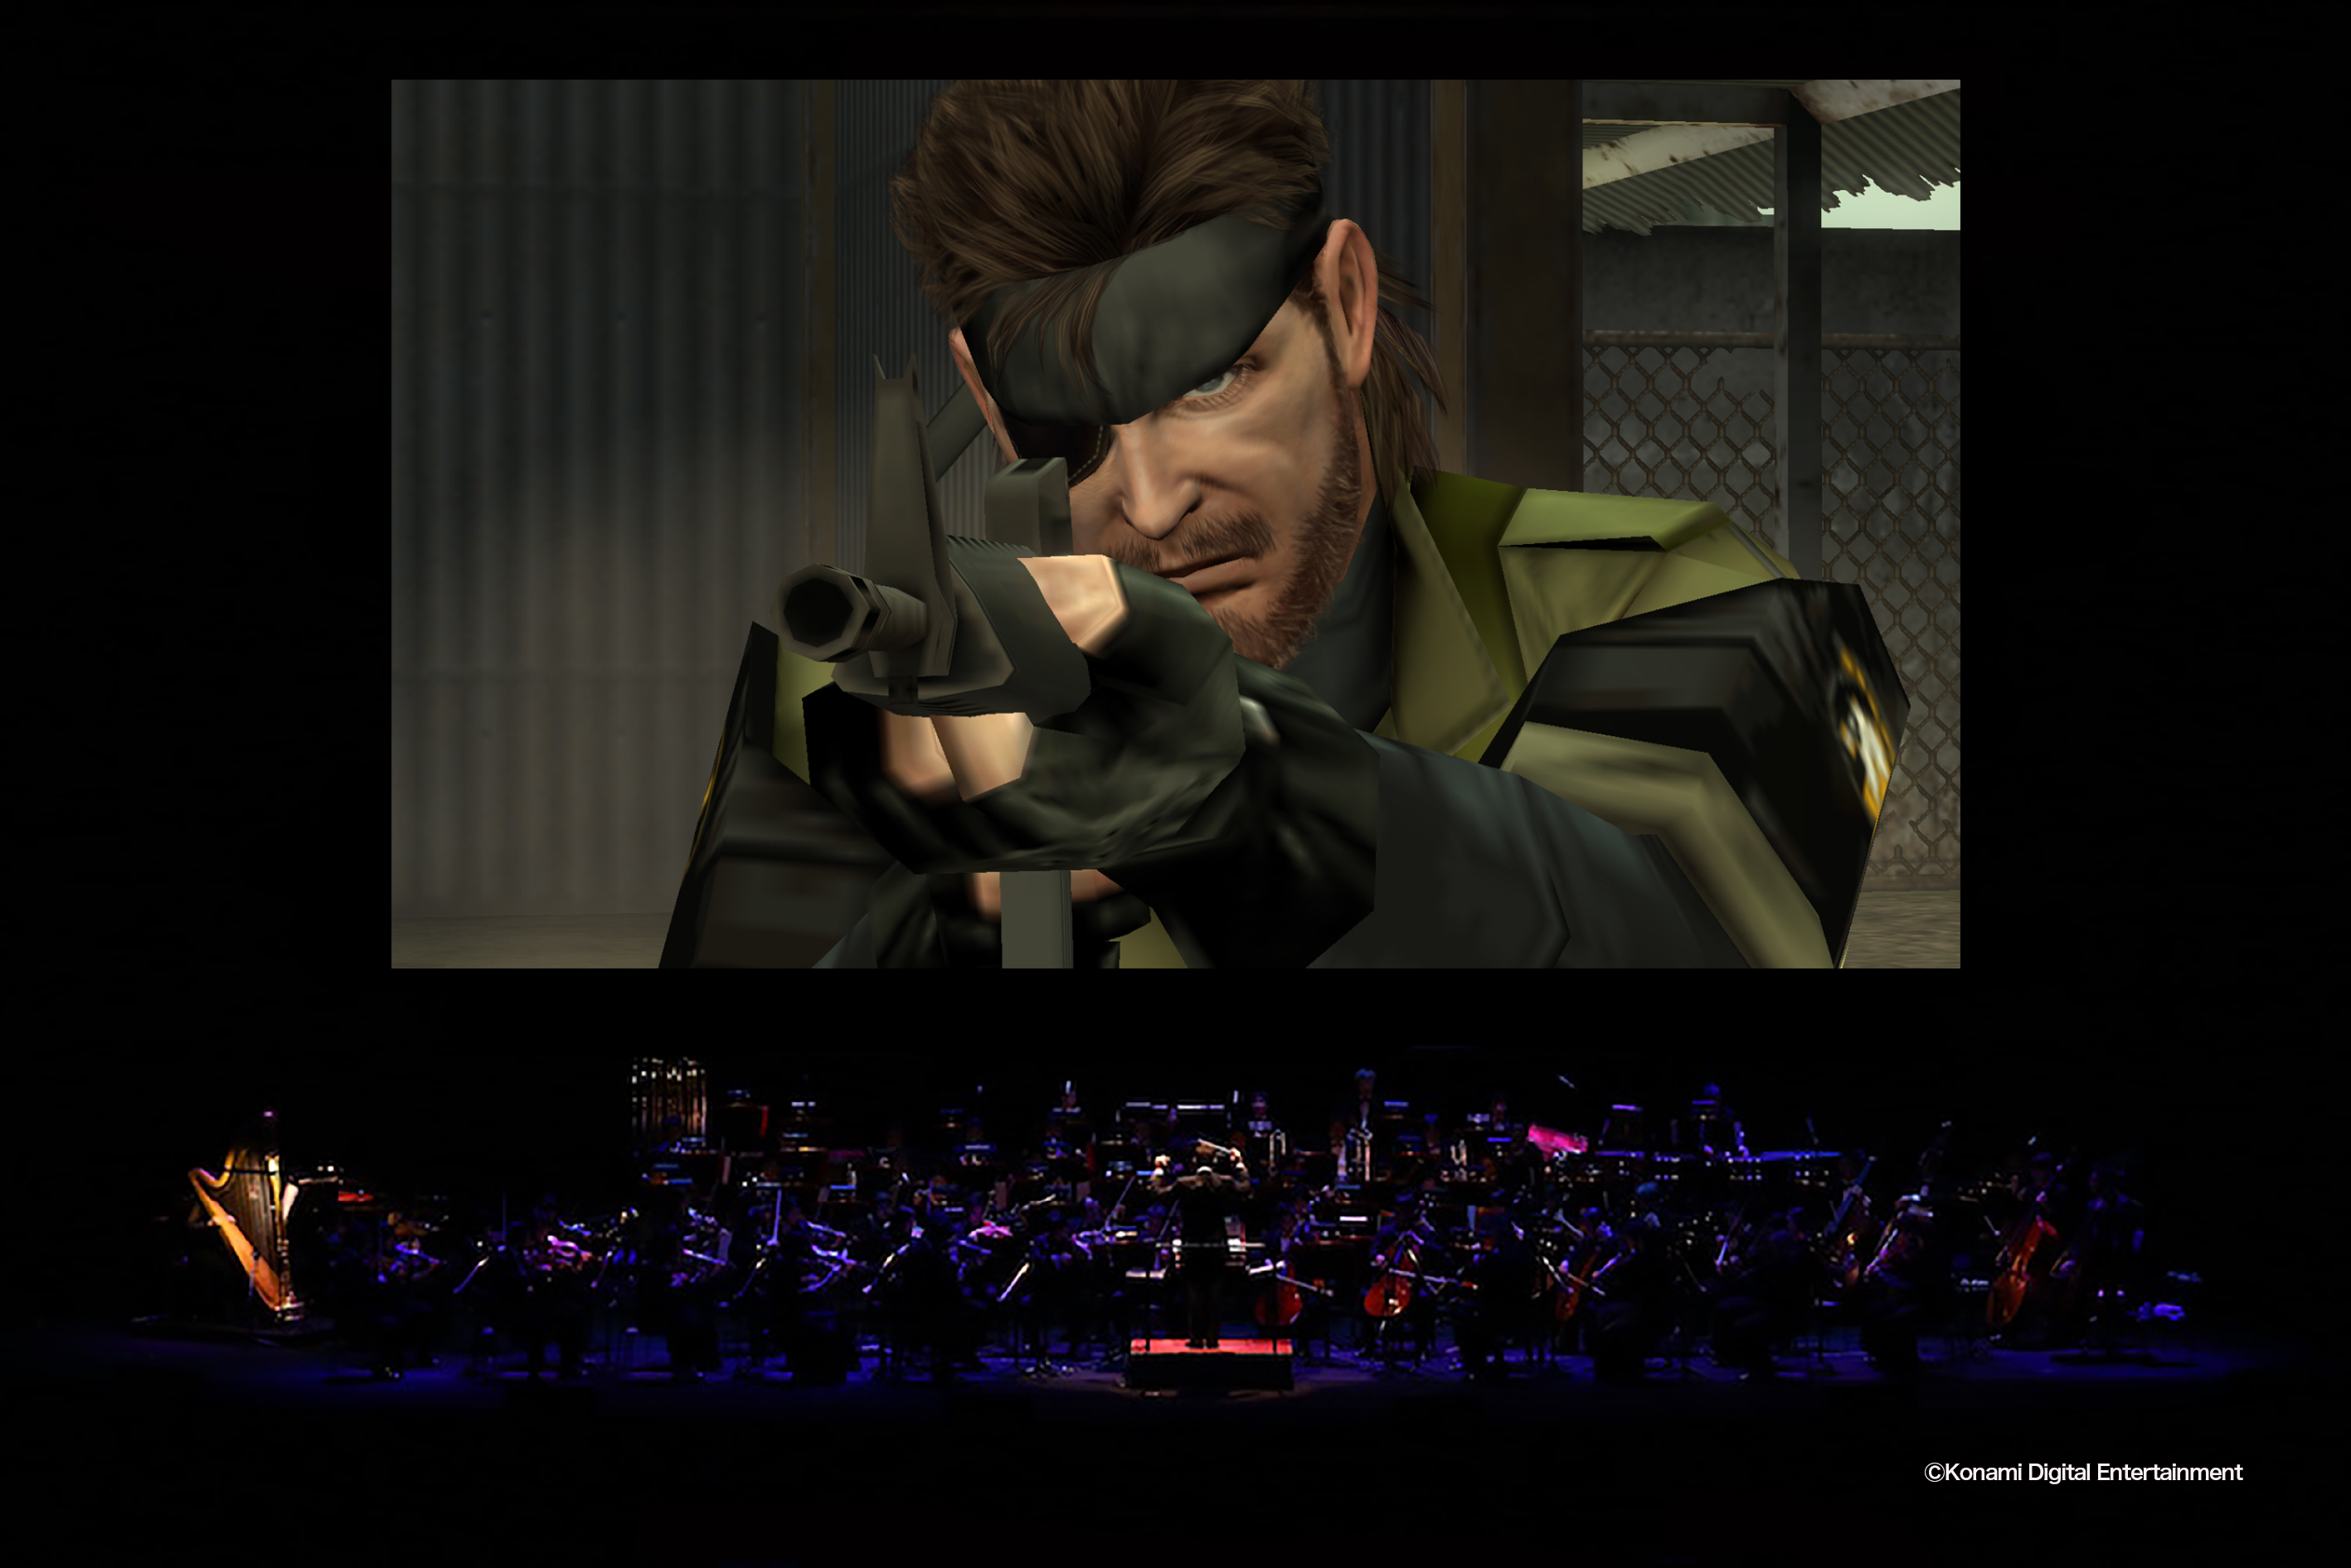 メタルギアinコンサート/ Metal Gear in Concert (C)Konami Digital Entertainment